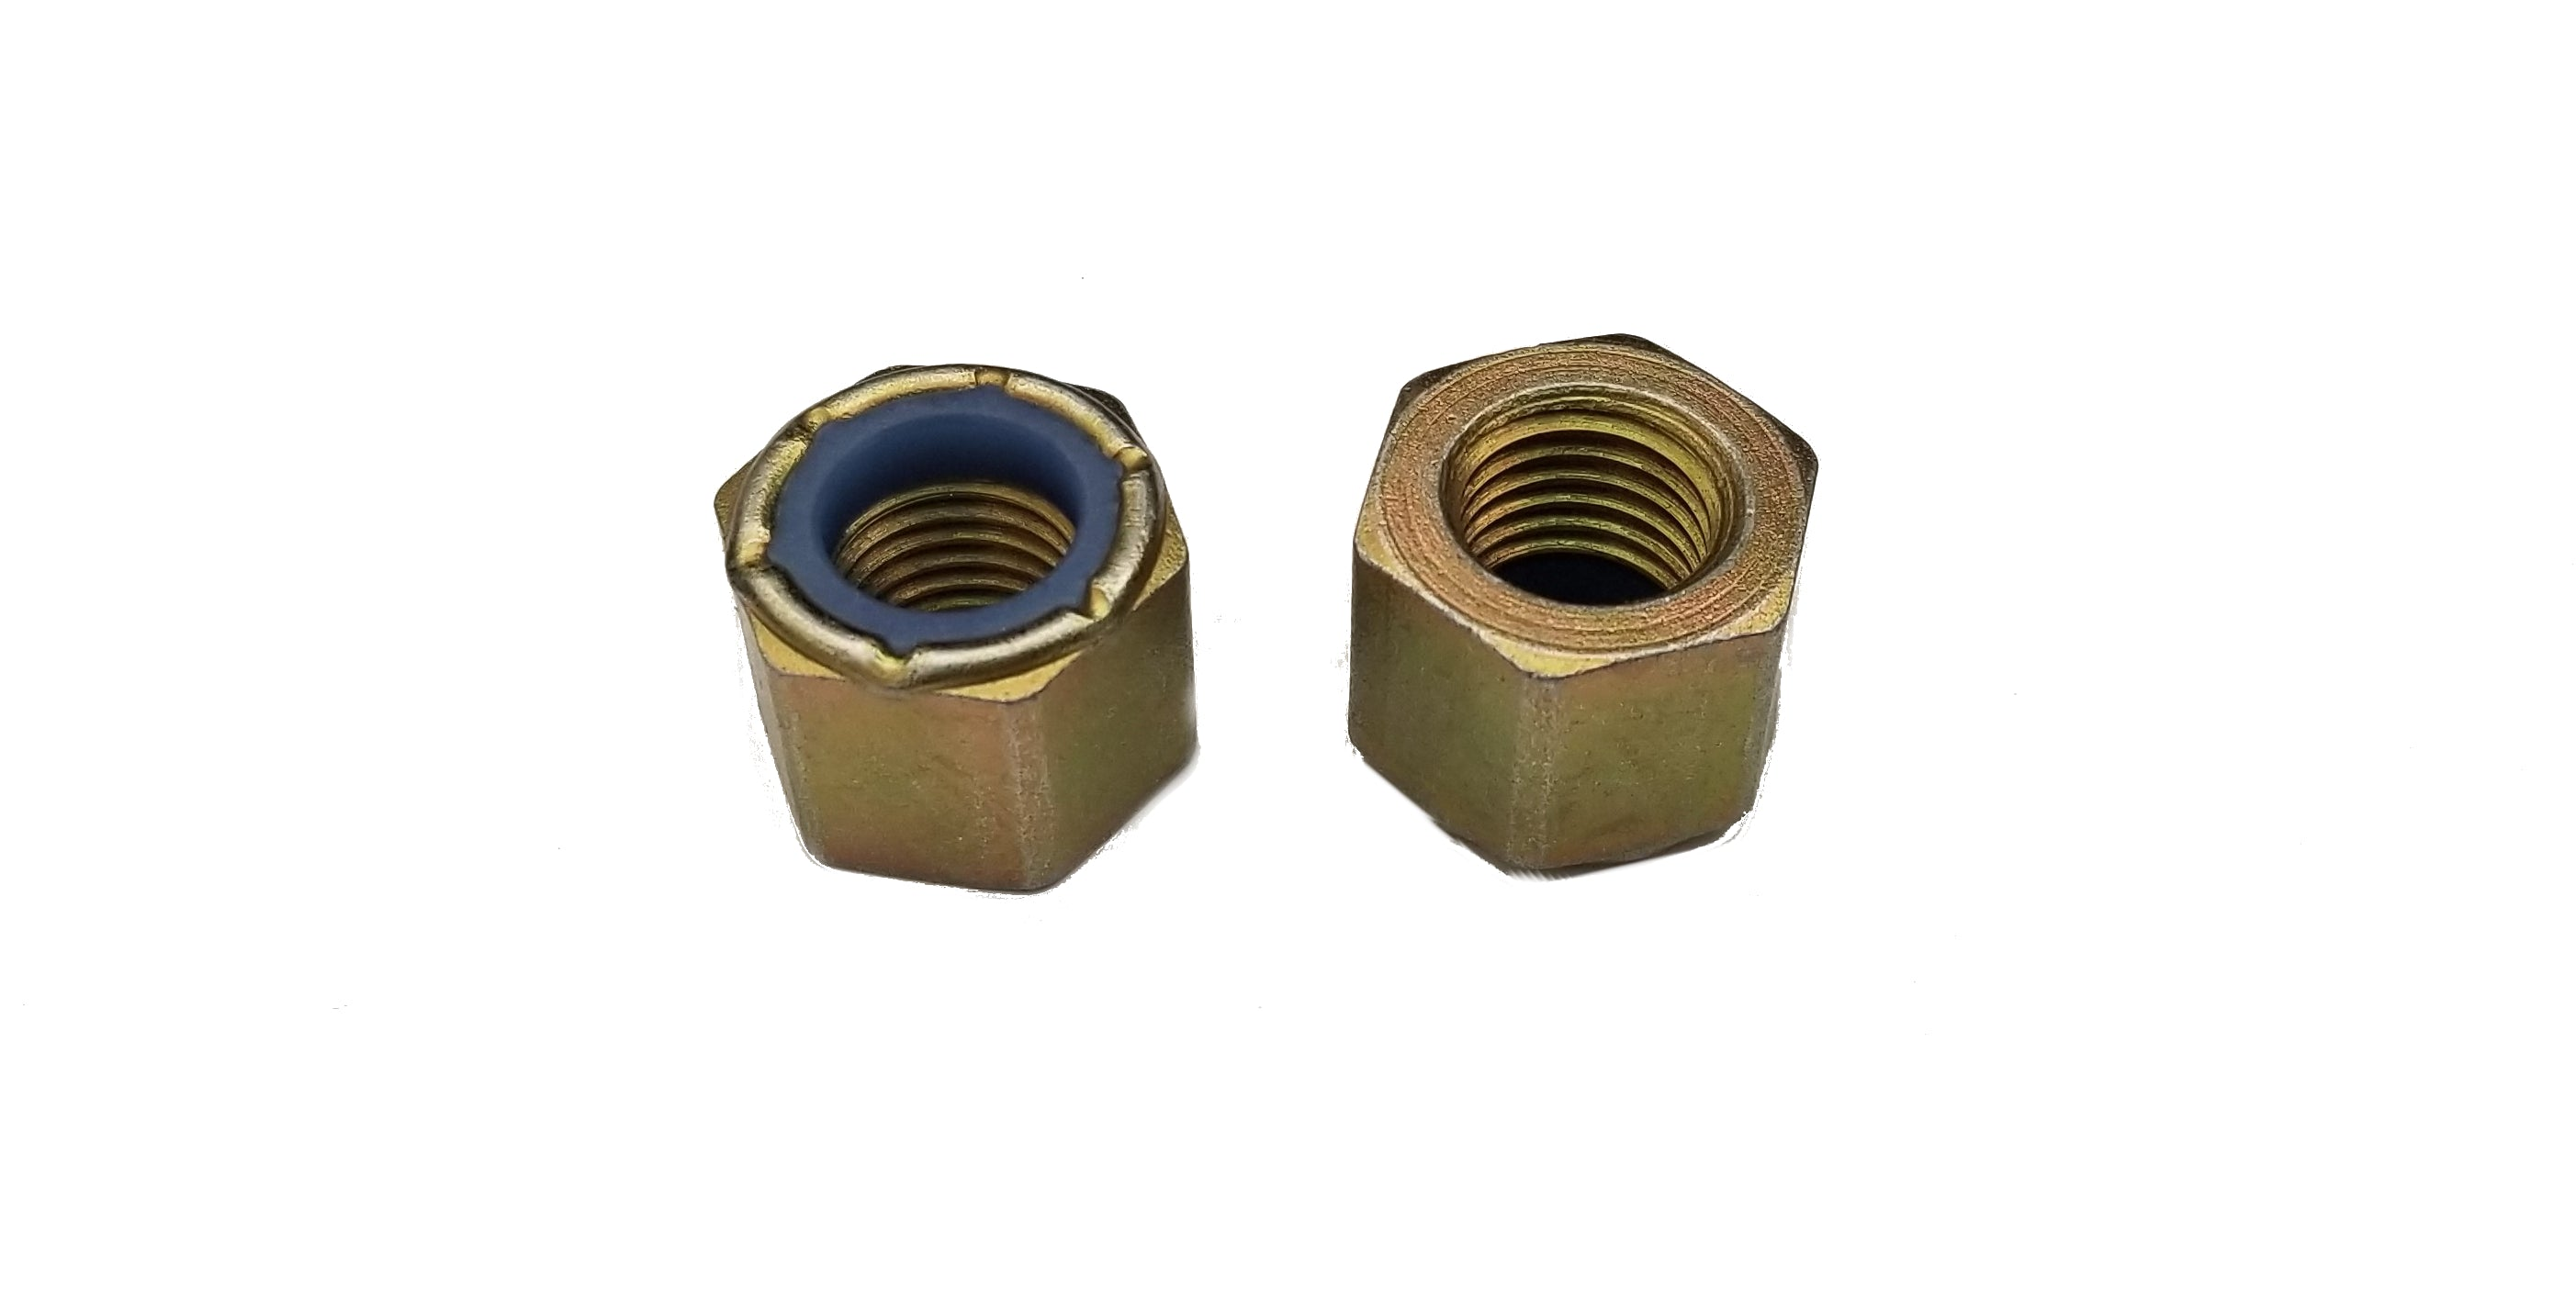 John Deere Original Equipment Lock Nut (Set of 2) - 14M7325